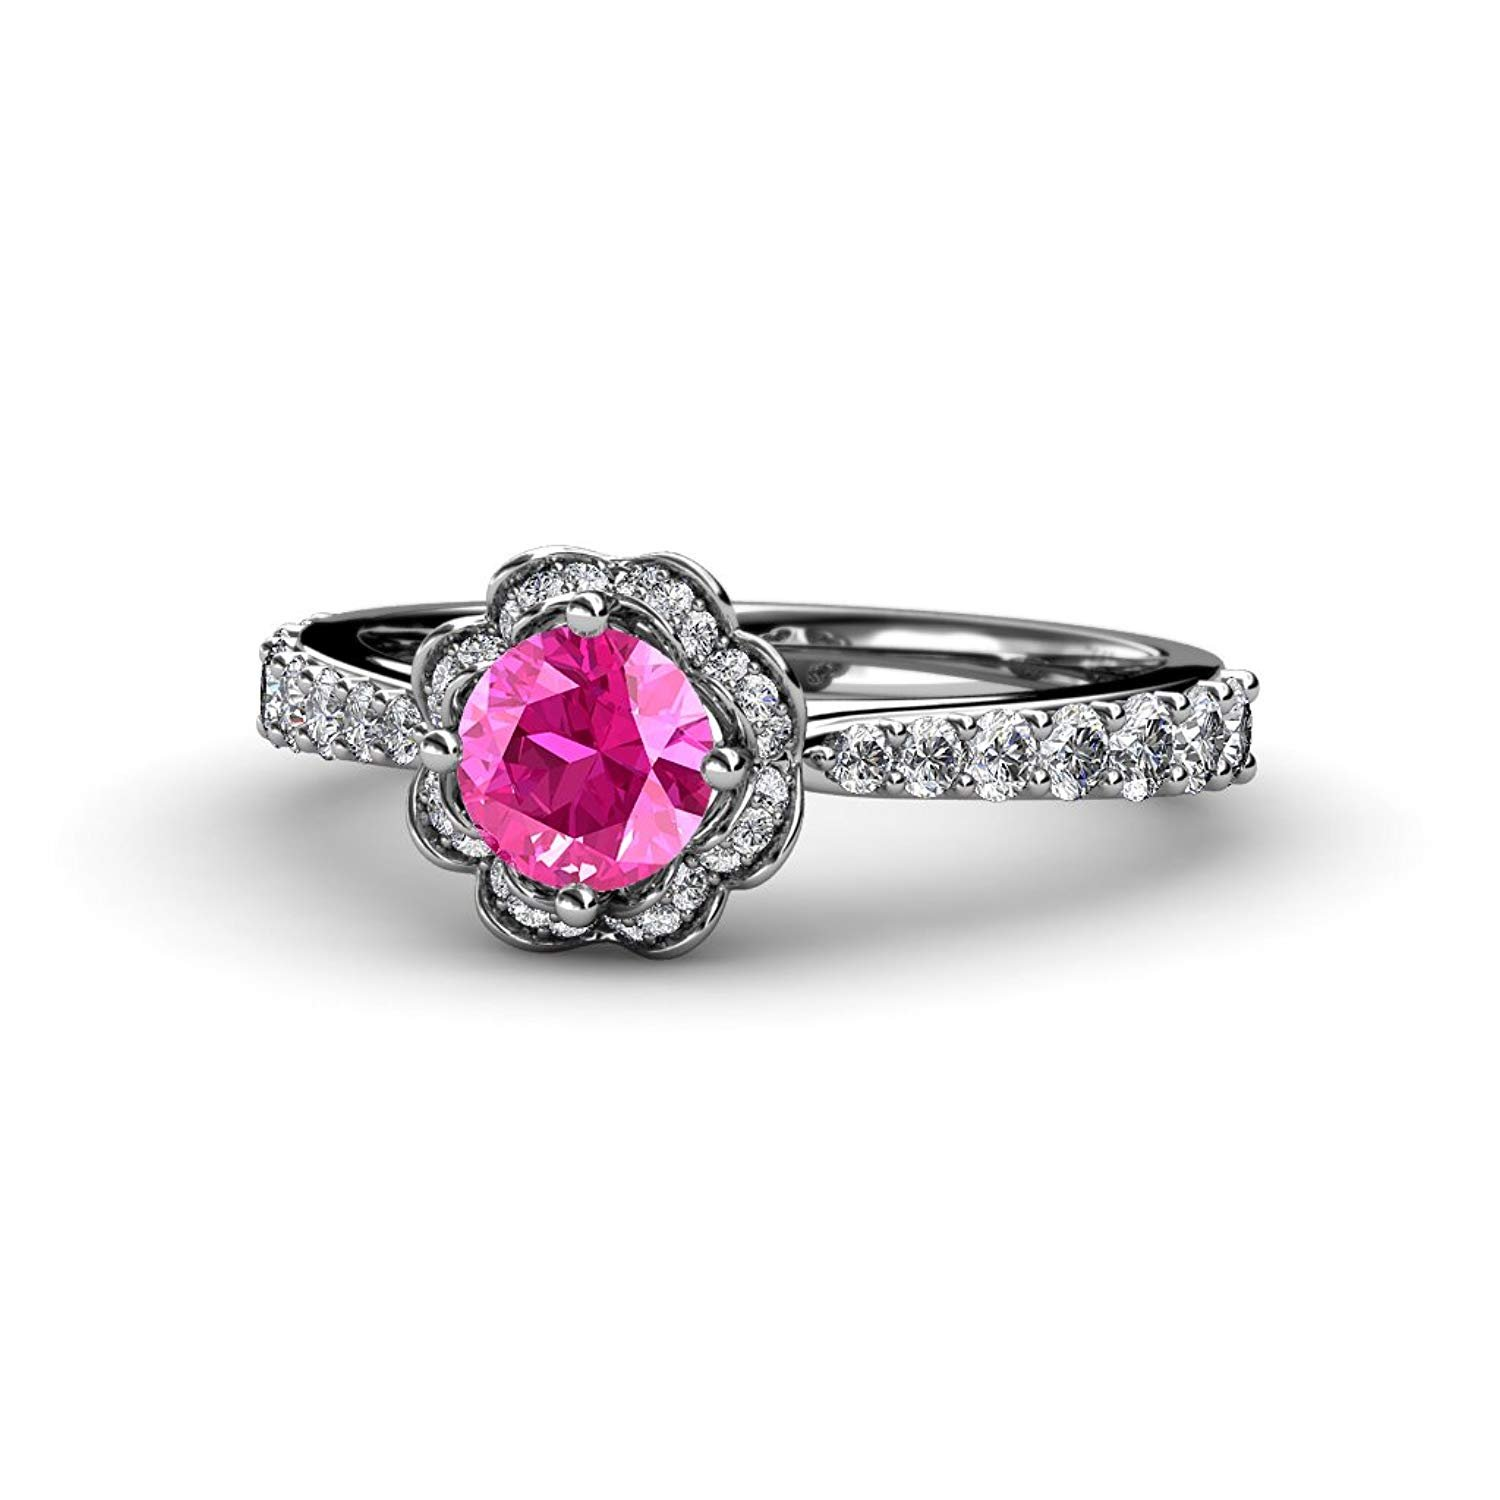 Pink Sapphire and Diamond (SI2-I1, G-H) Floral Halo Engagement Ring 1.33 ct tw in 14K White Gold.size 8.0 by TriJewels